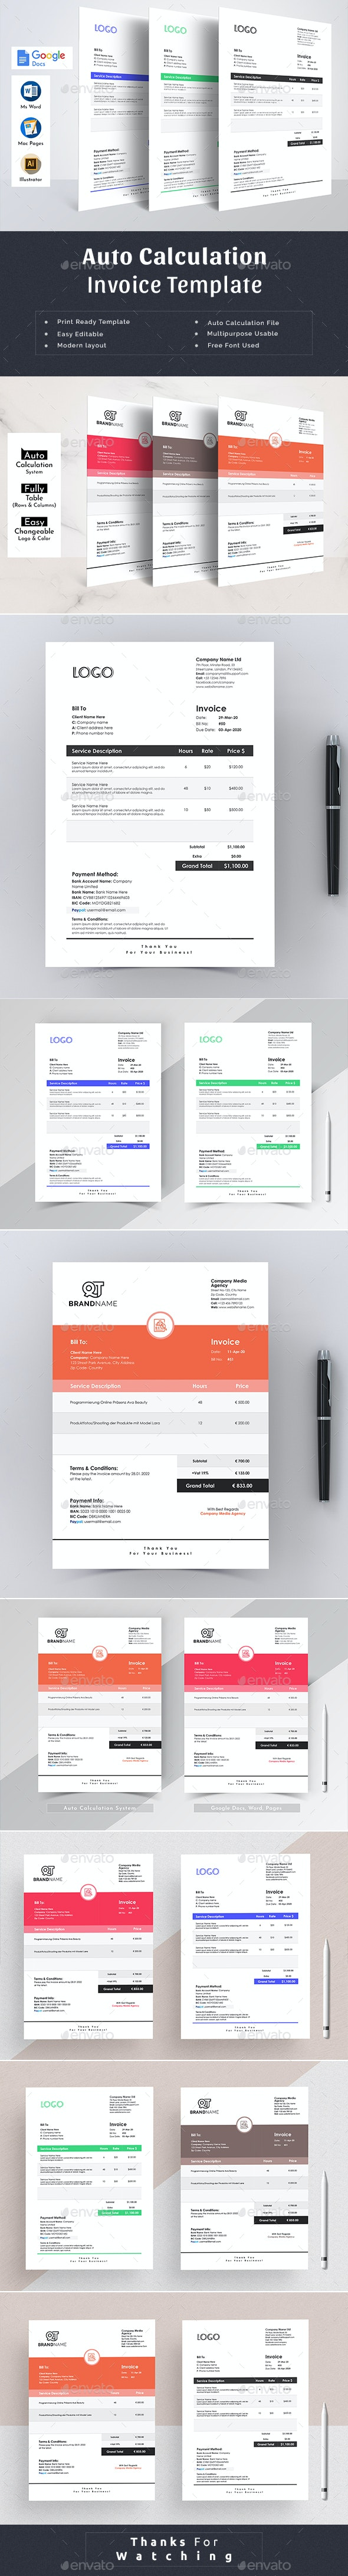 Clean Ecommerce Auto Calculation Invoice Template Word Apple Pages Google Docs